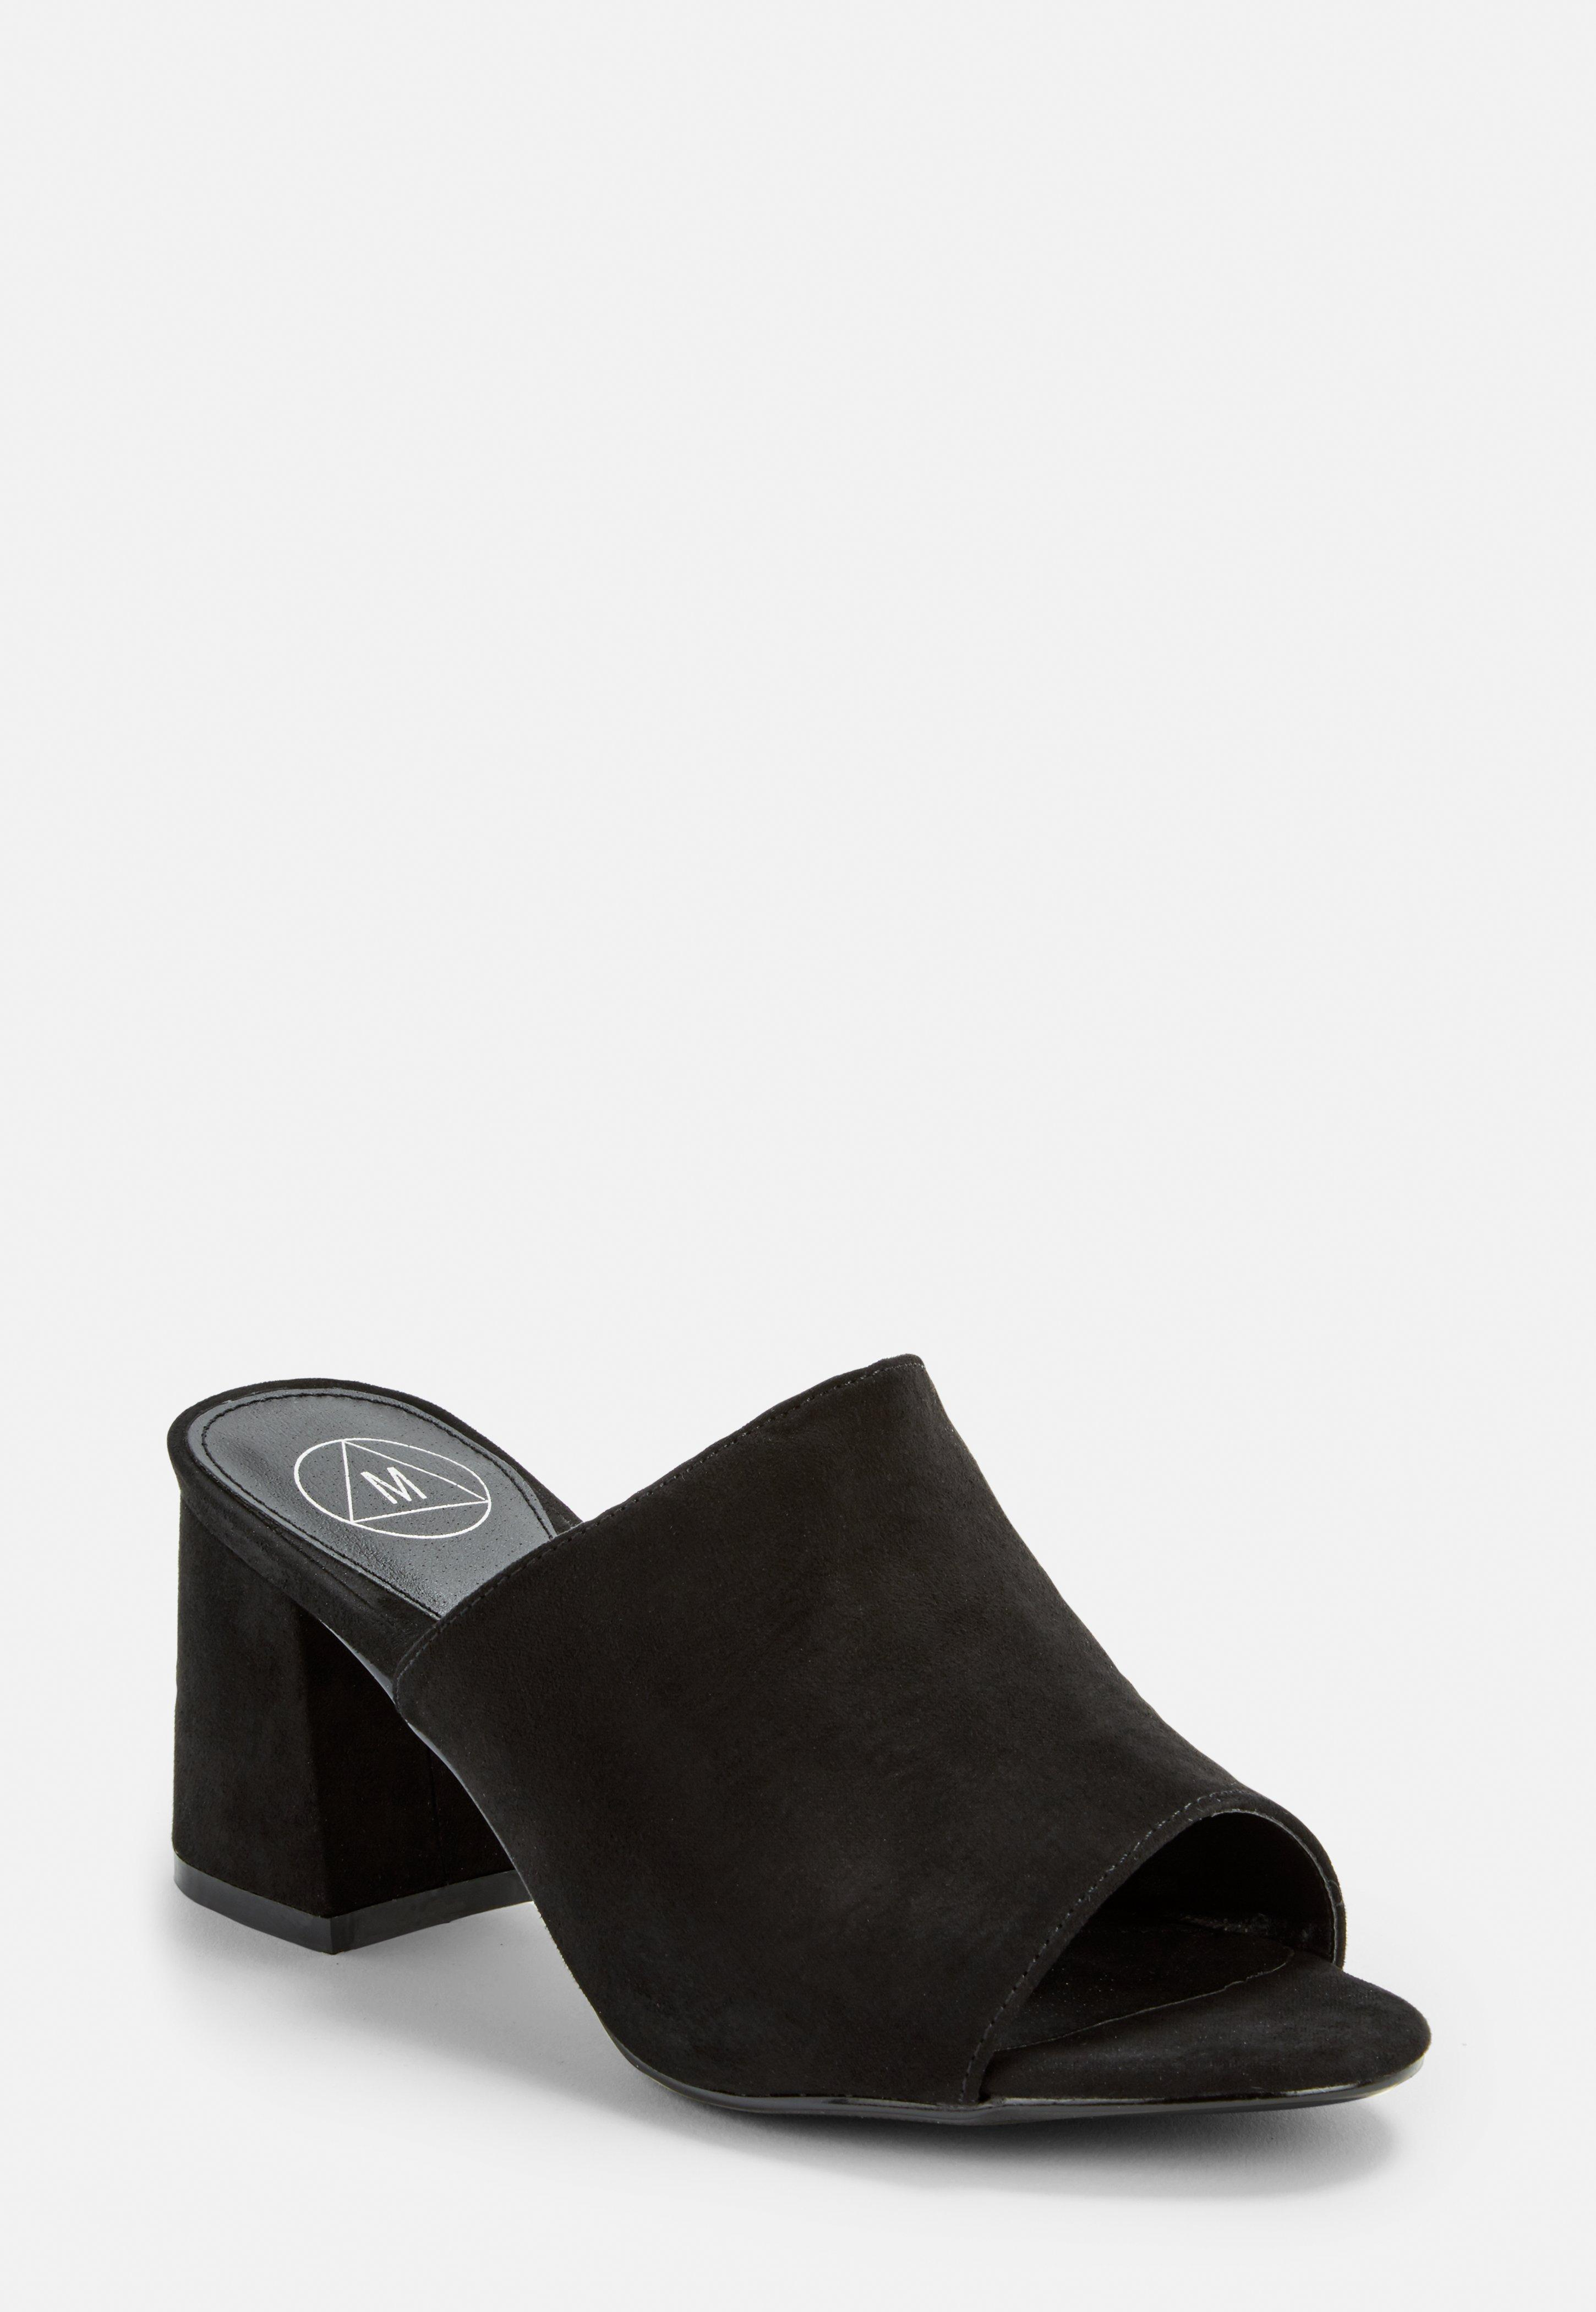 b47888a53b Women's Mules | Shop Mules Shoes - Missguided